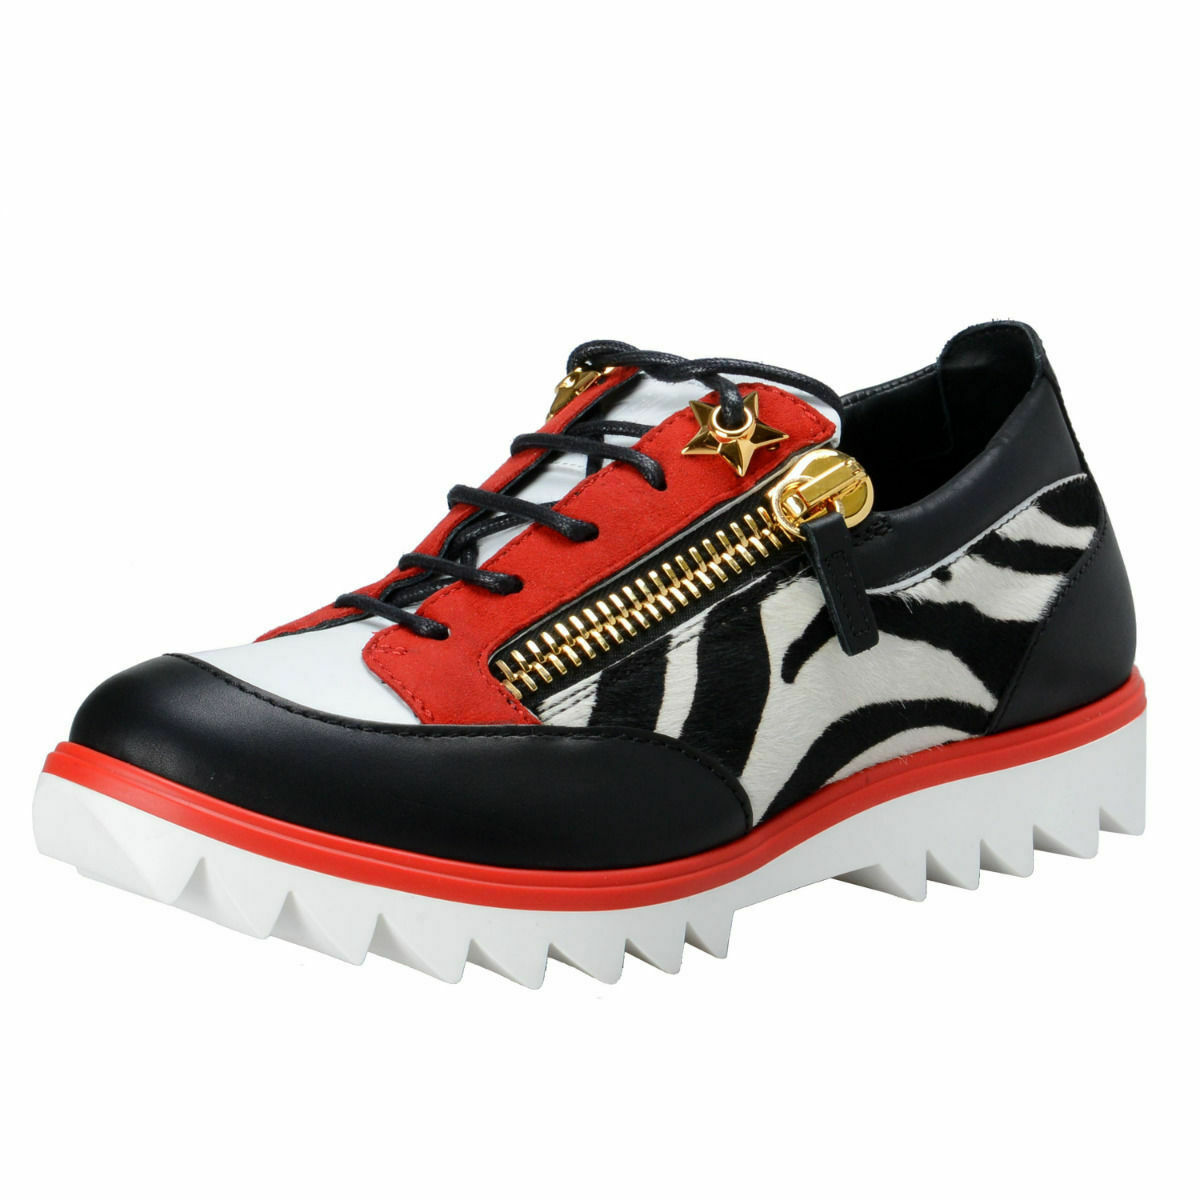 Giuseppe Zanotti Homme Leather Sneakers shoes 6 7 8 9 9.5 10 10.5 11 1.5 12 13